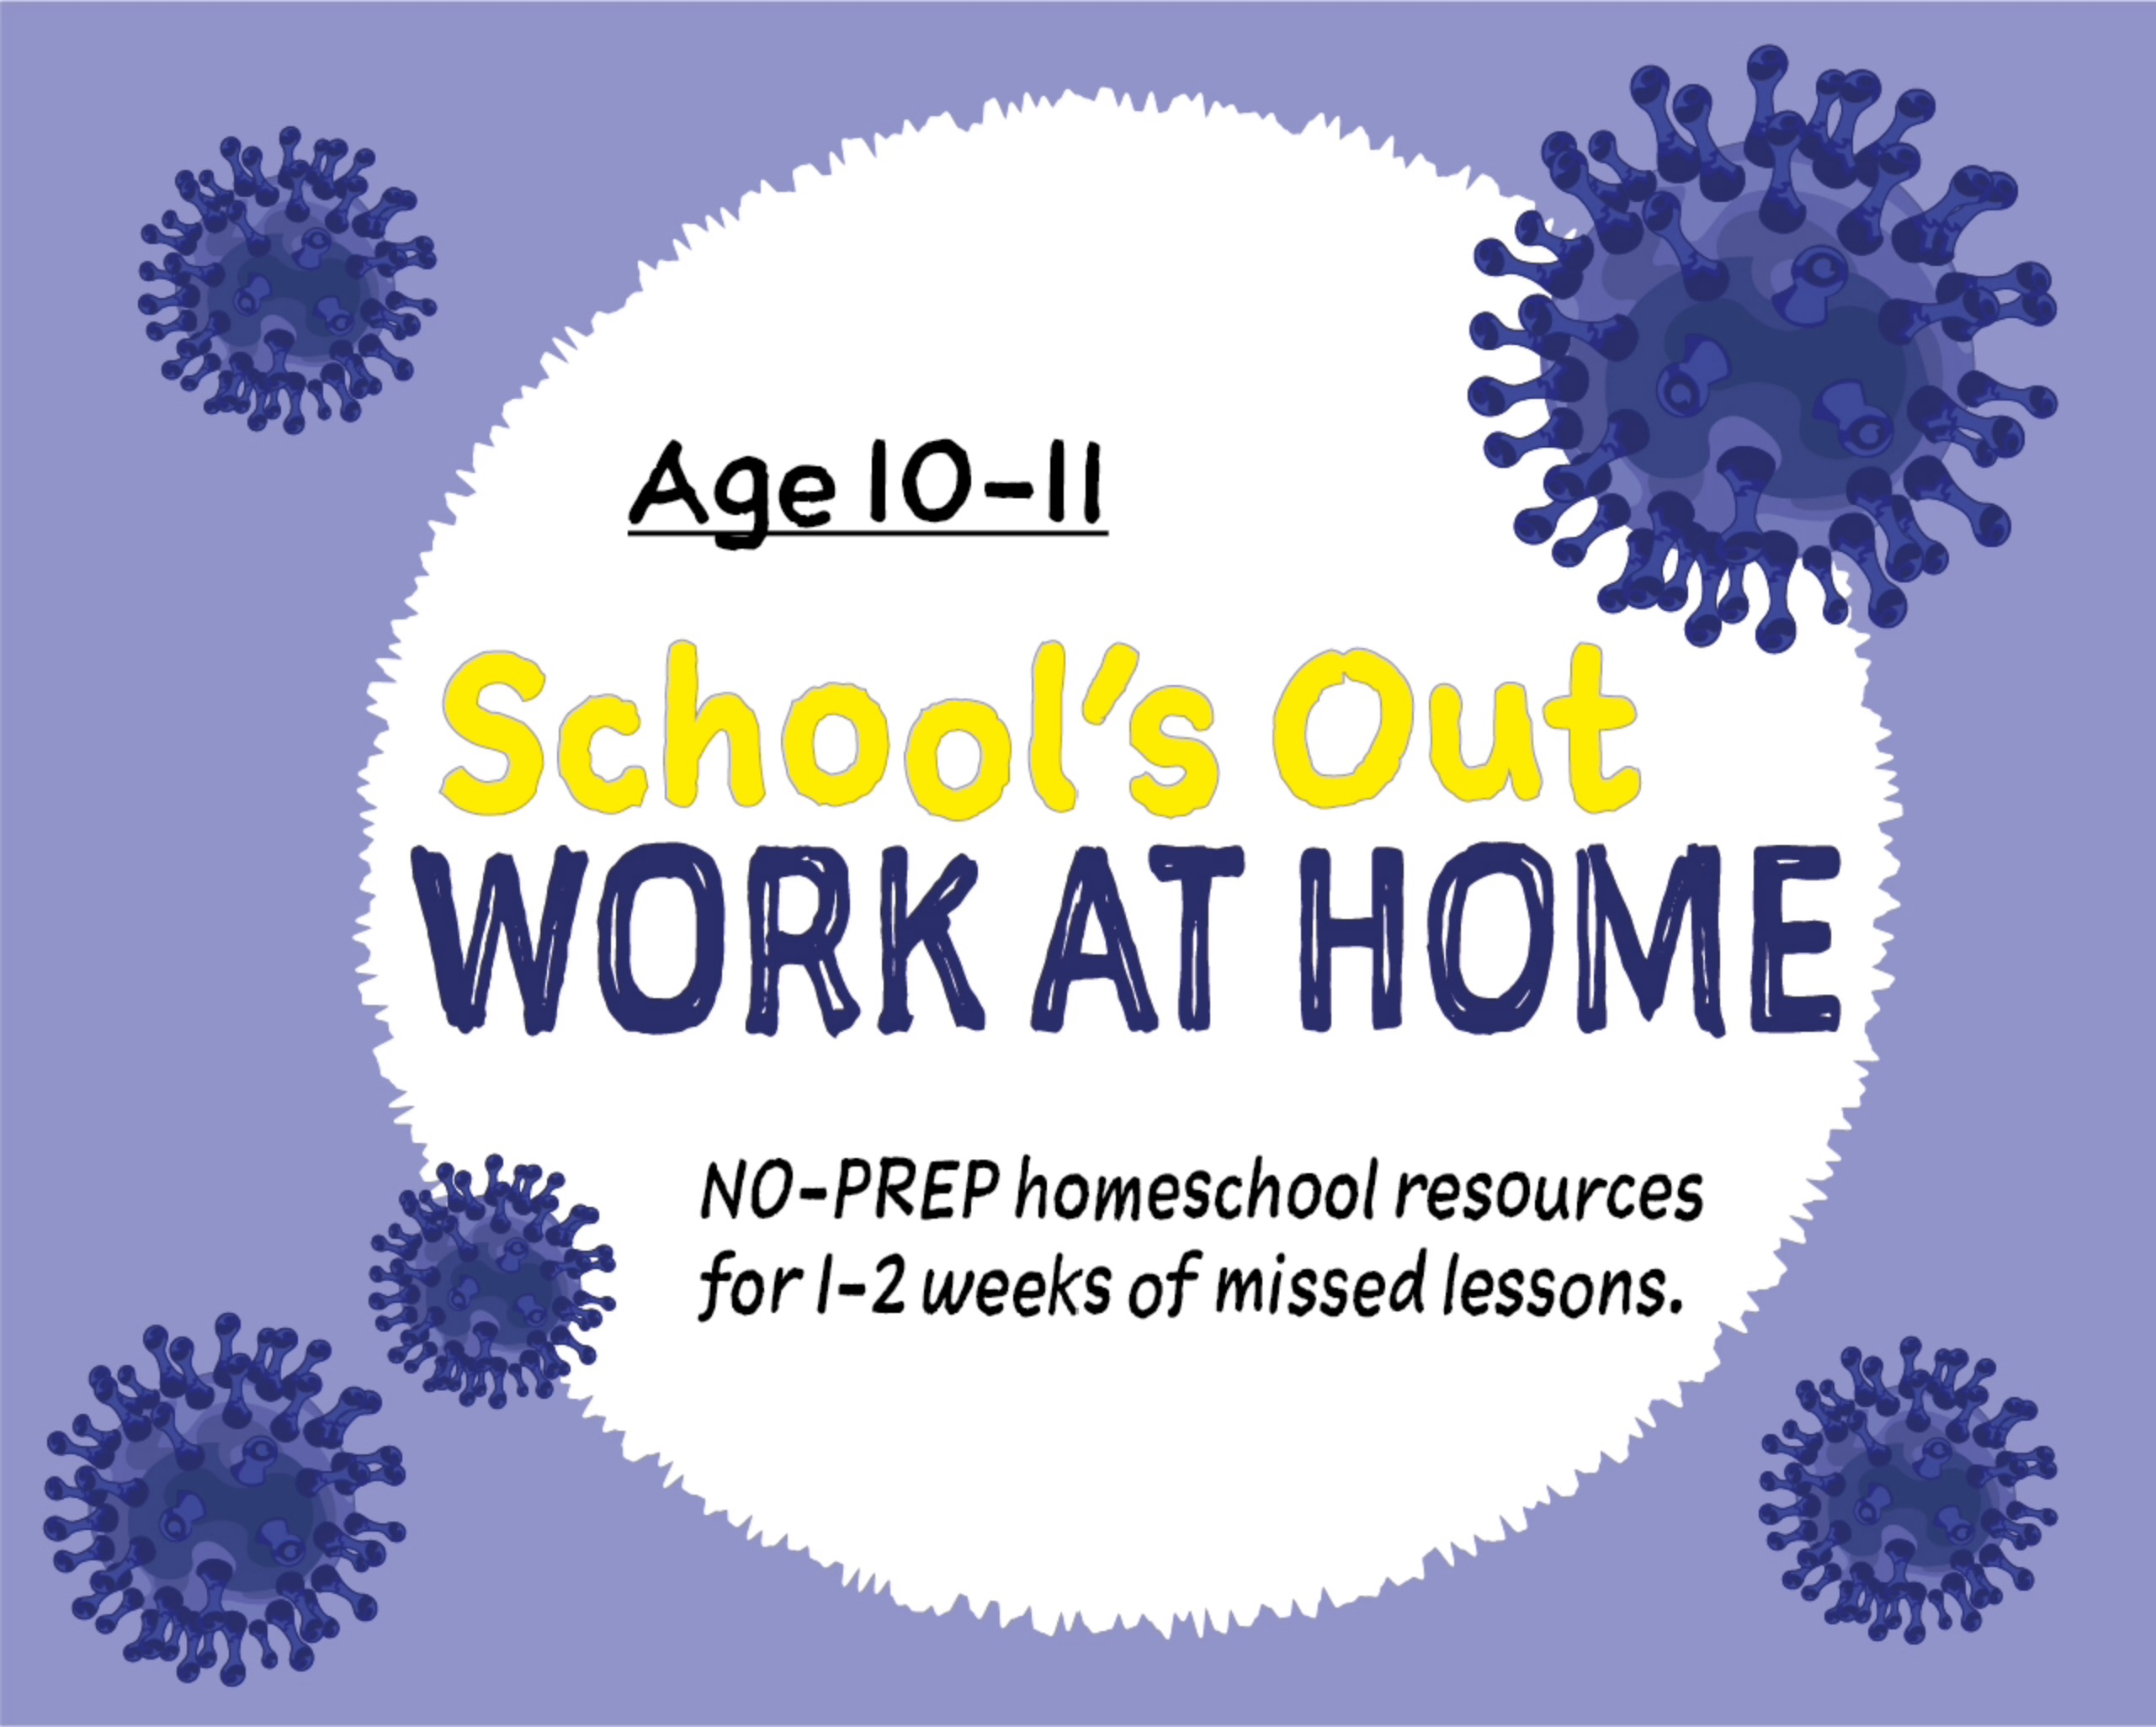 Schools Out For Coronavirus! Prepare For Schooling At Home (age 10-11 years) (year 6) (grade 5)